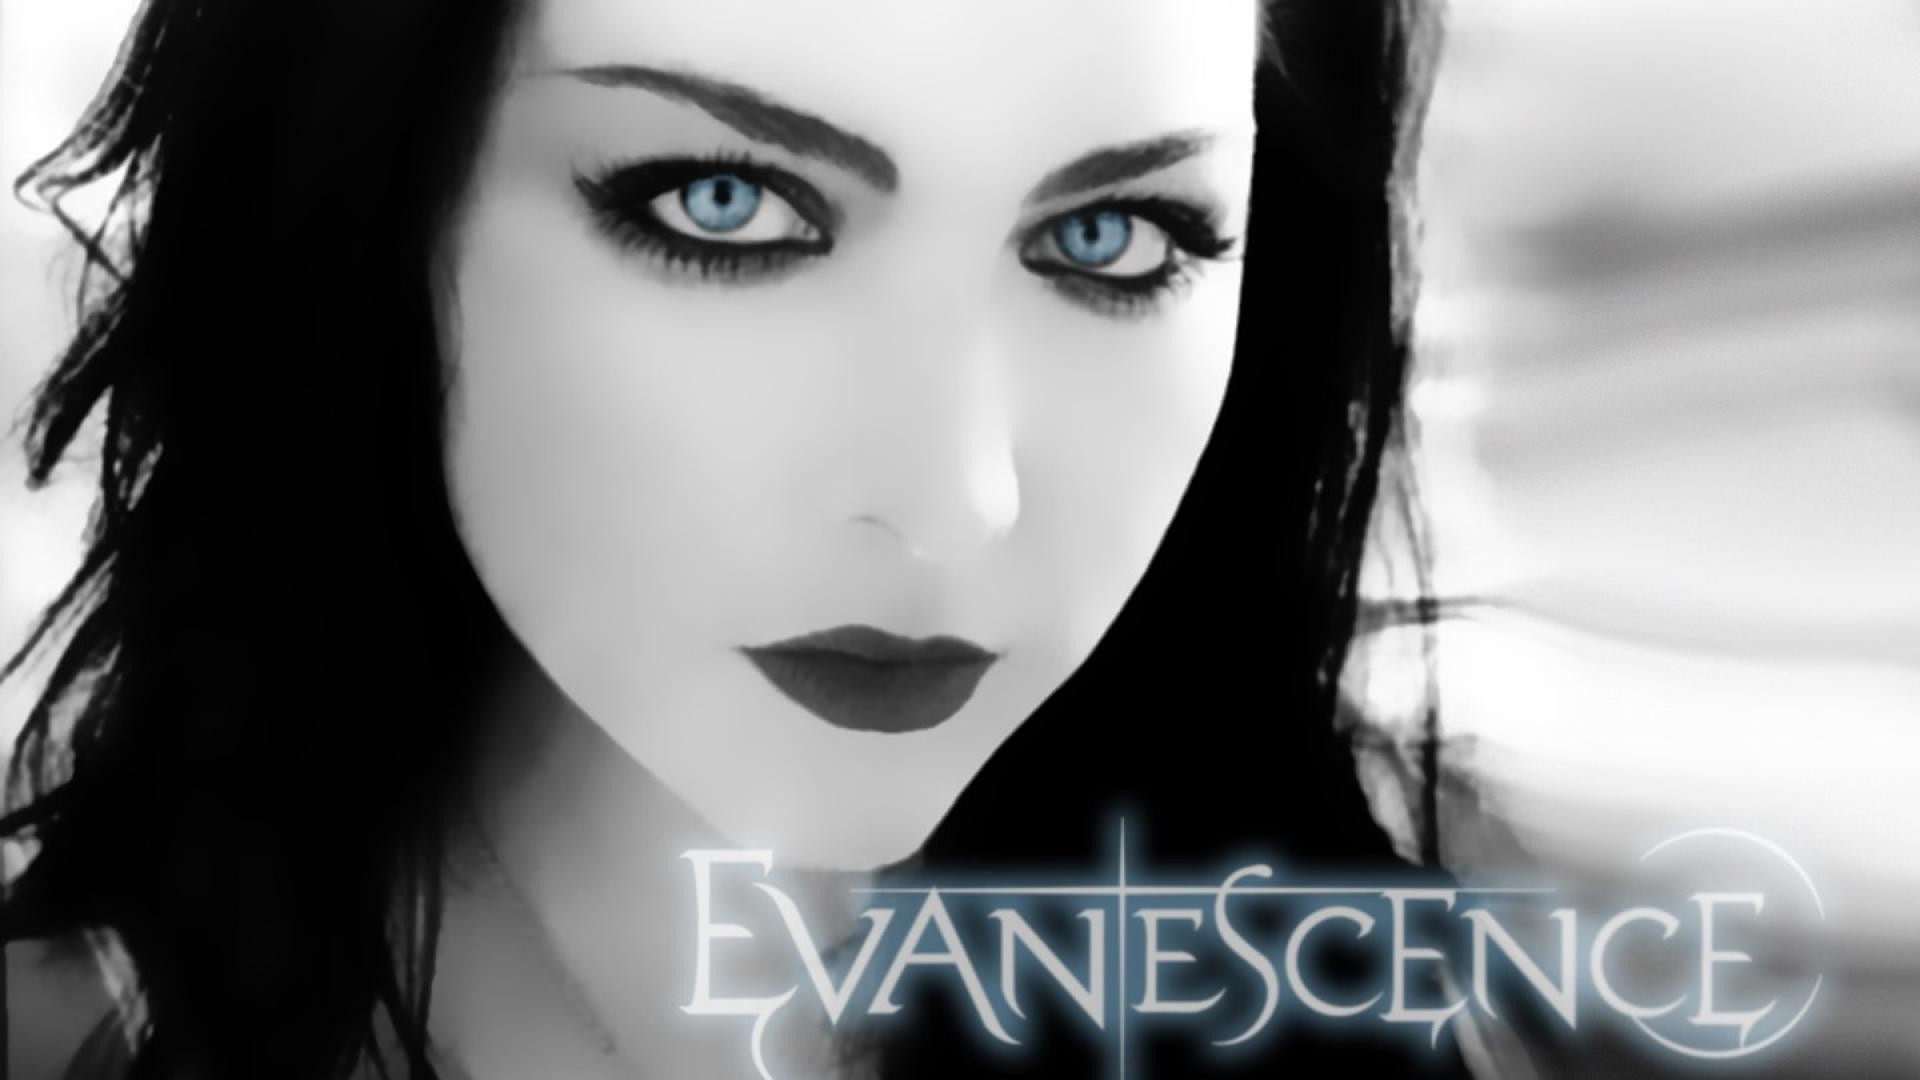 1920x1080 Evanescence HD Wallpapers - Free download latest Evanescence HD Wallpapers  for Computer, Mobile, iPhone, iPad or any Gadget at WallpapersCharlie.co…